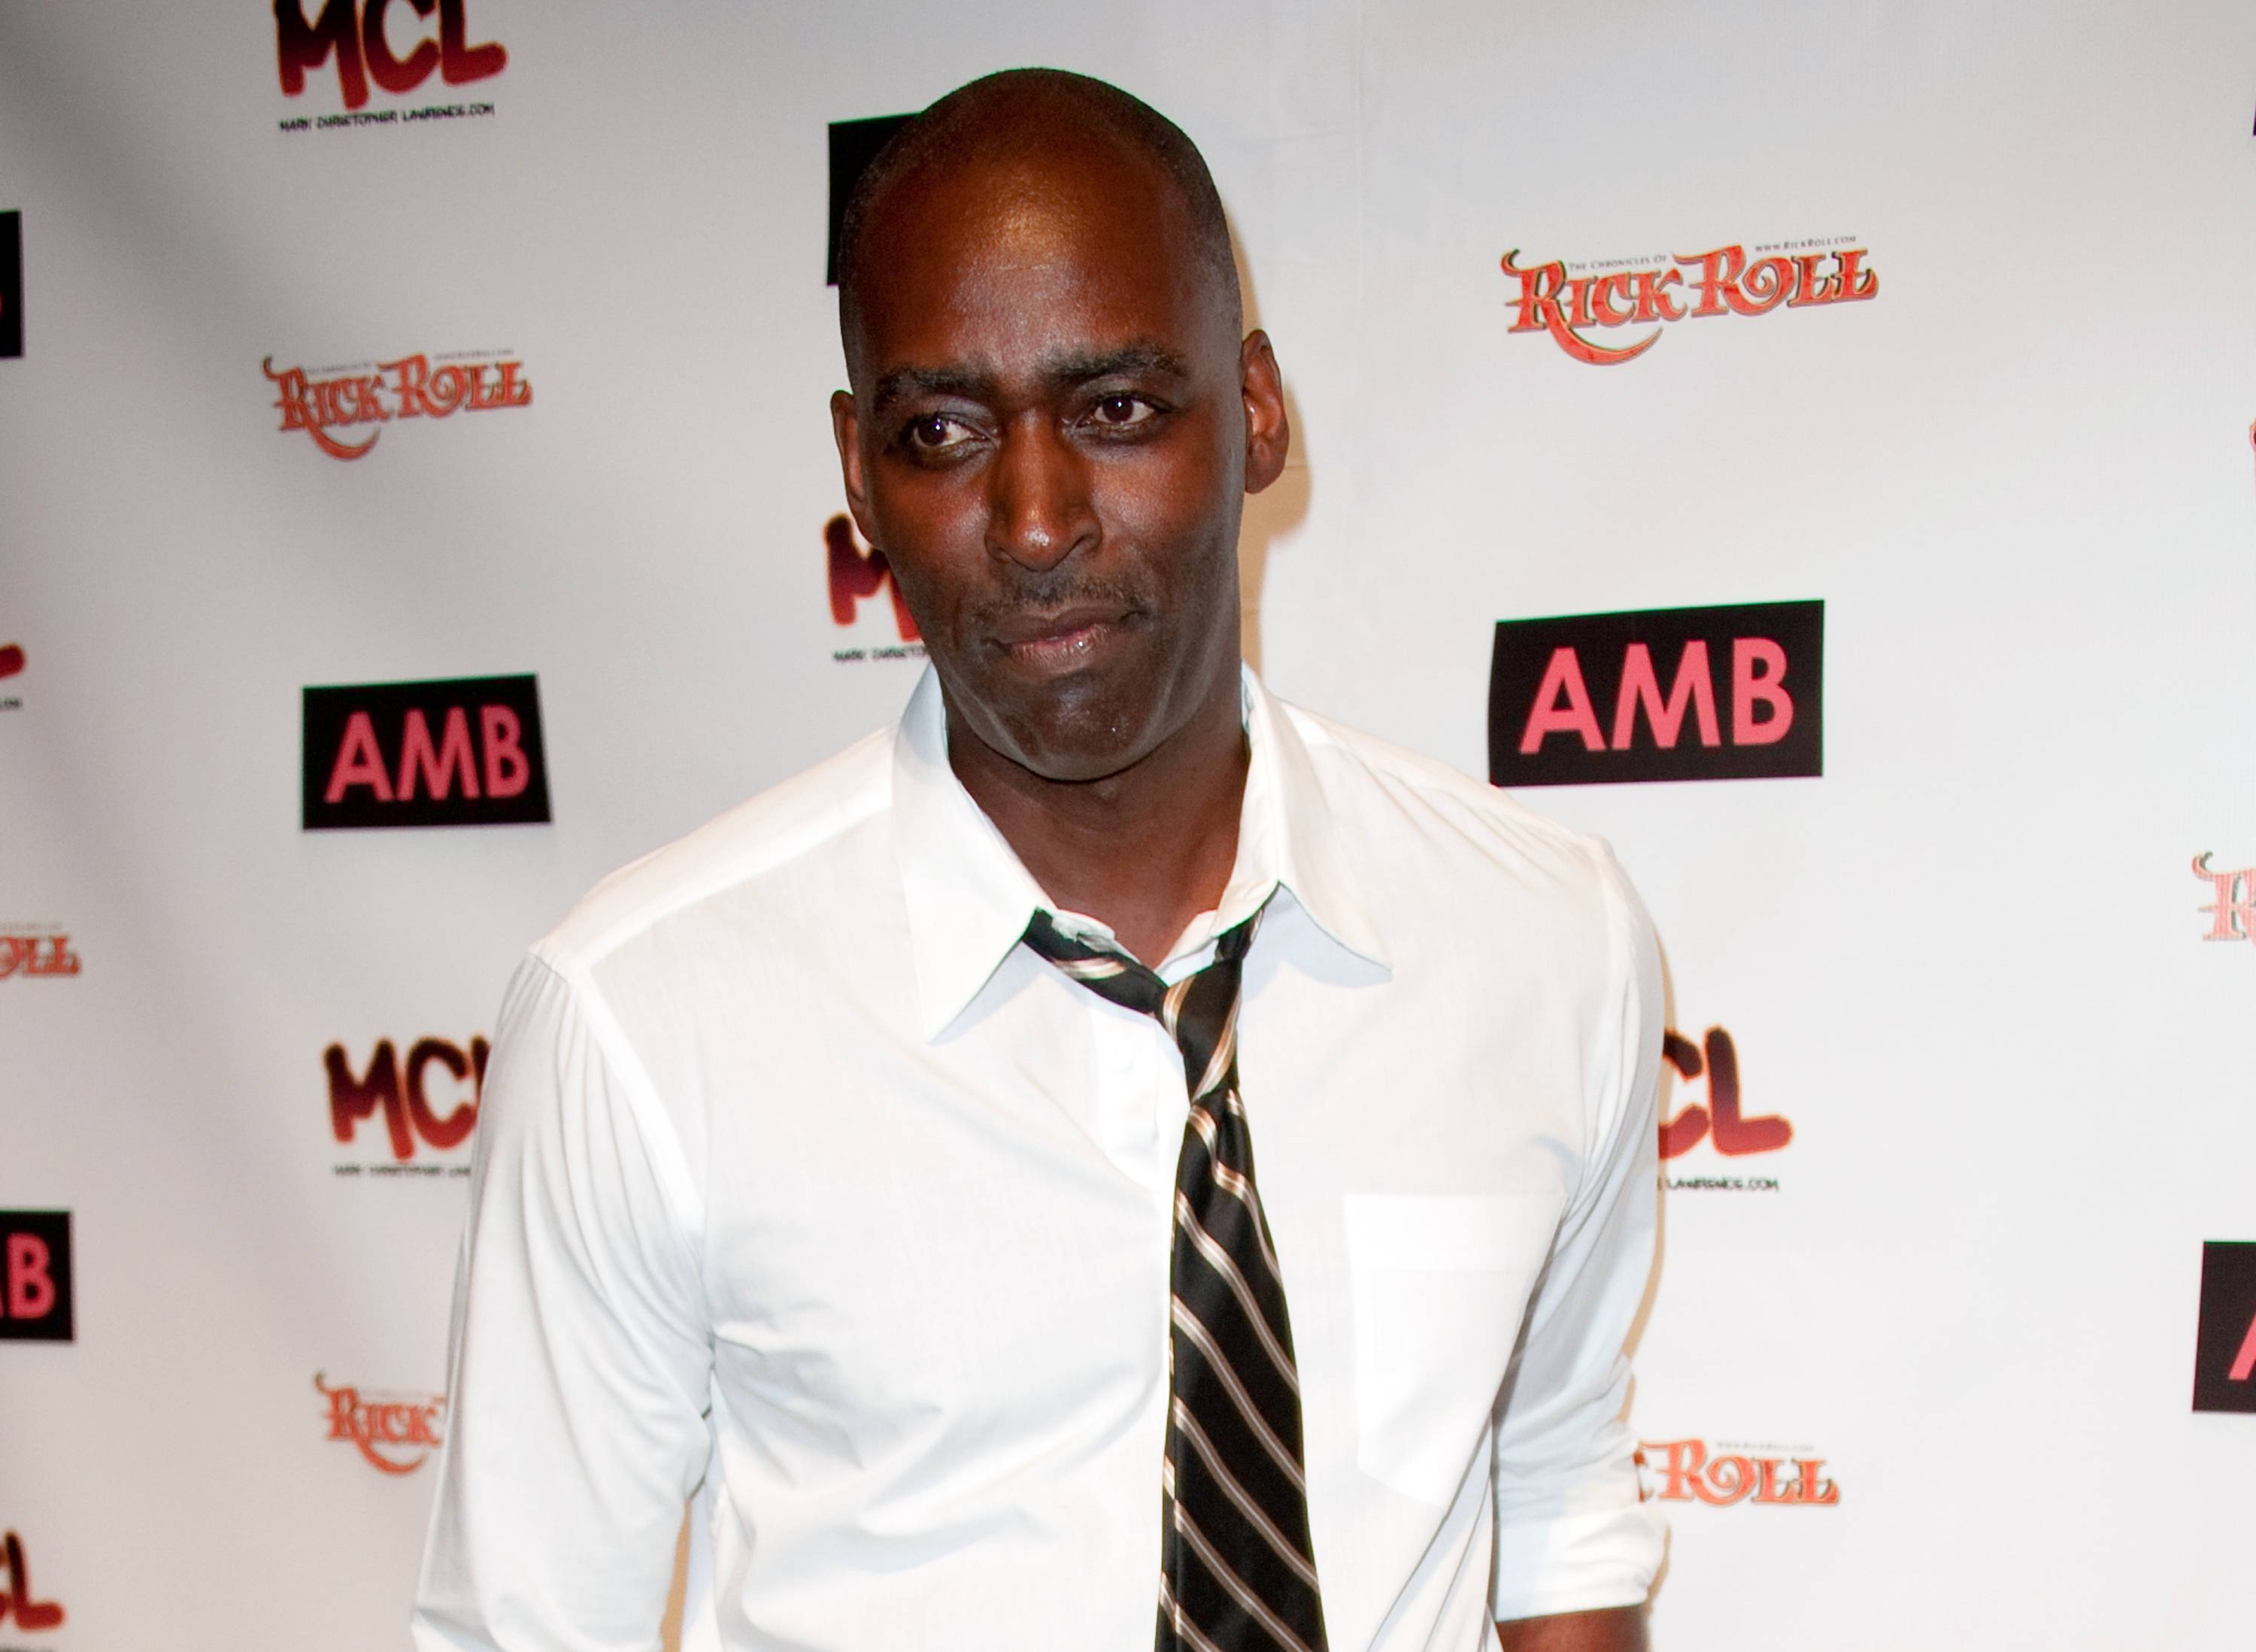 Los Angeles prosecutors charged Michael Jace with murder on Thursday in the shooting death of his wife on Monday.